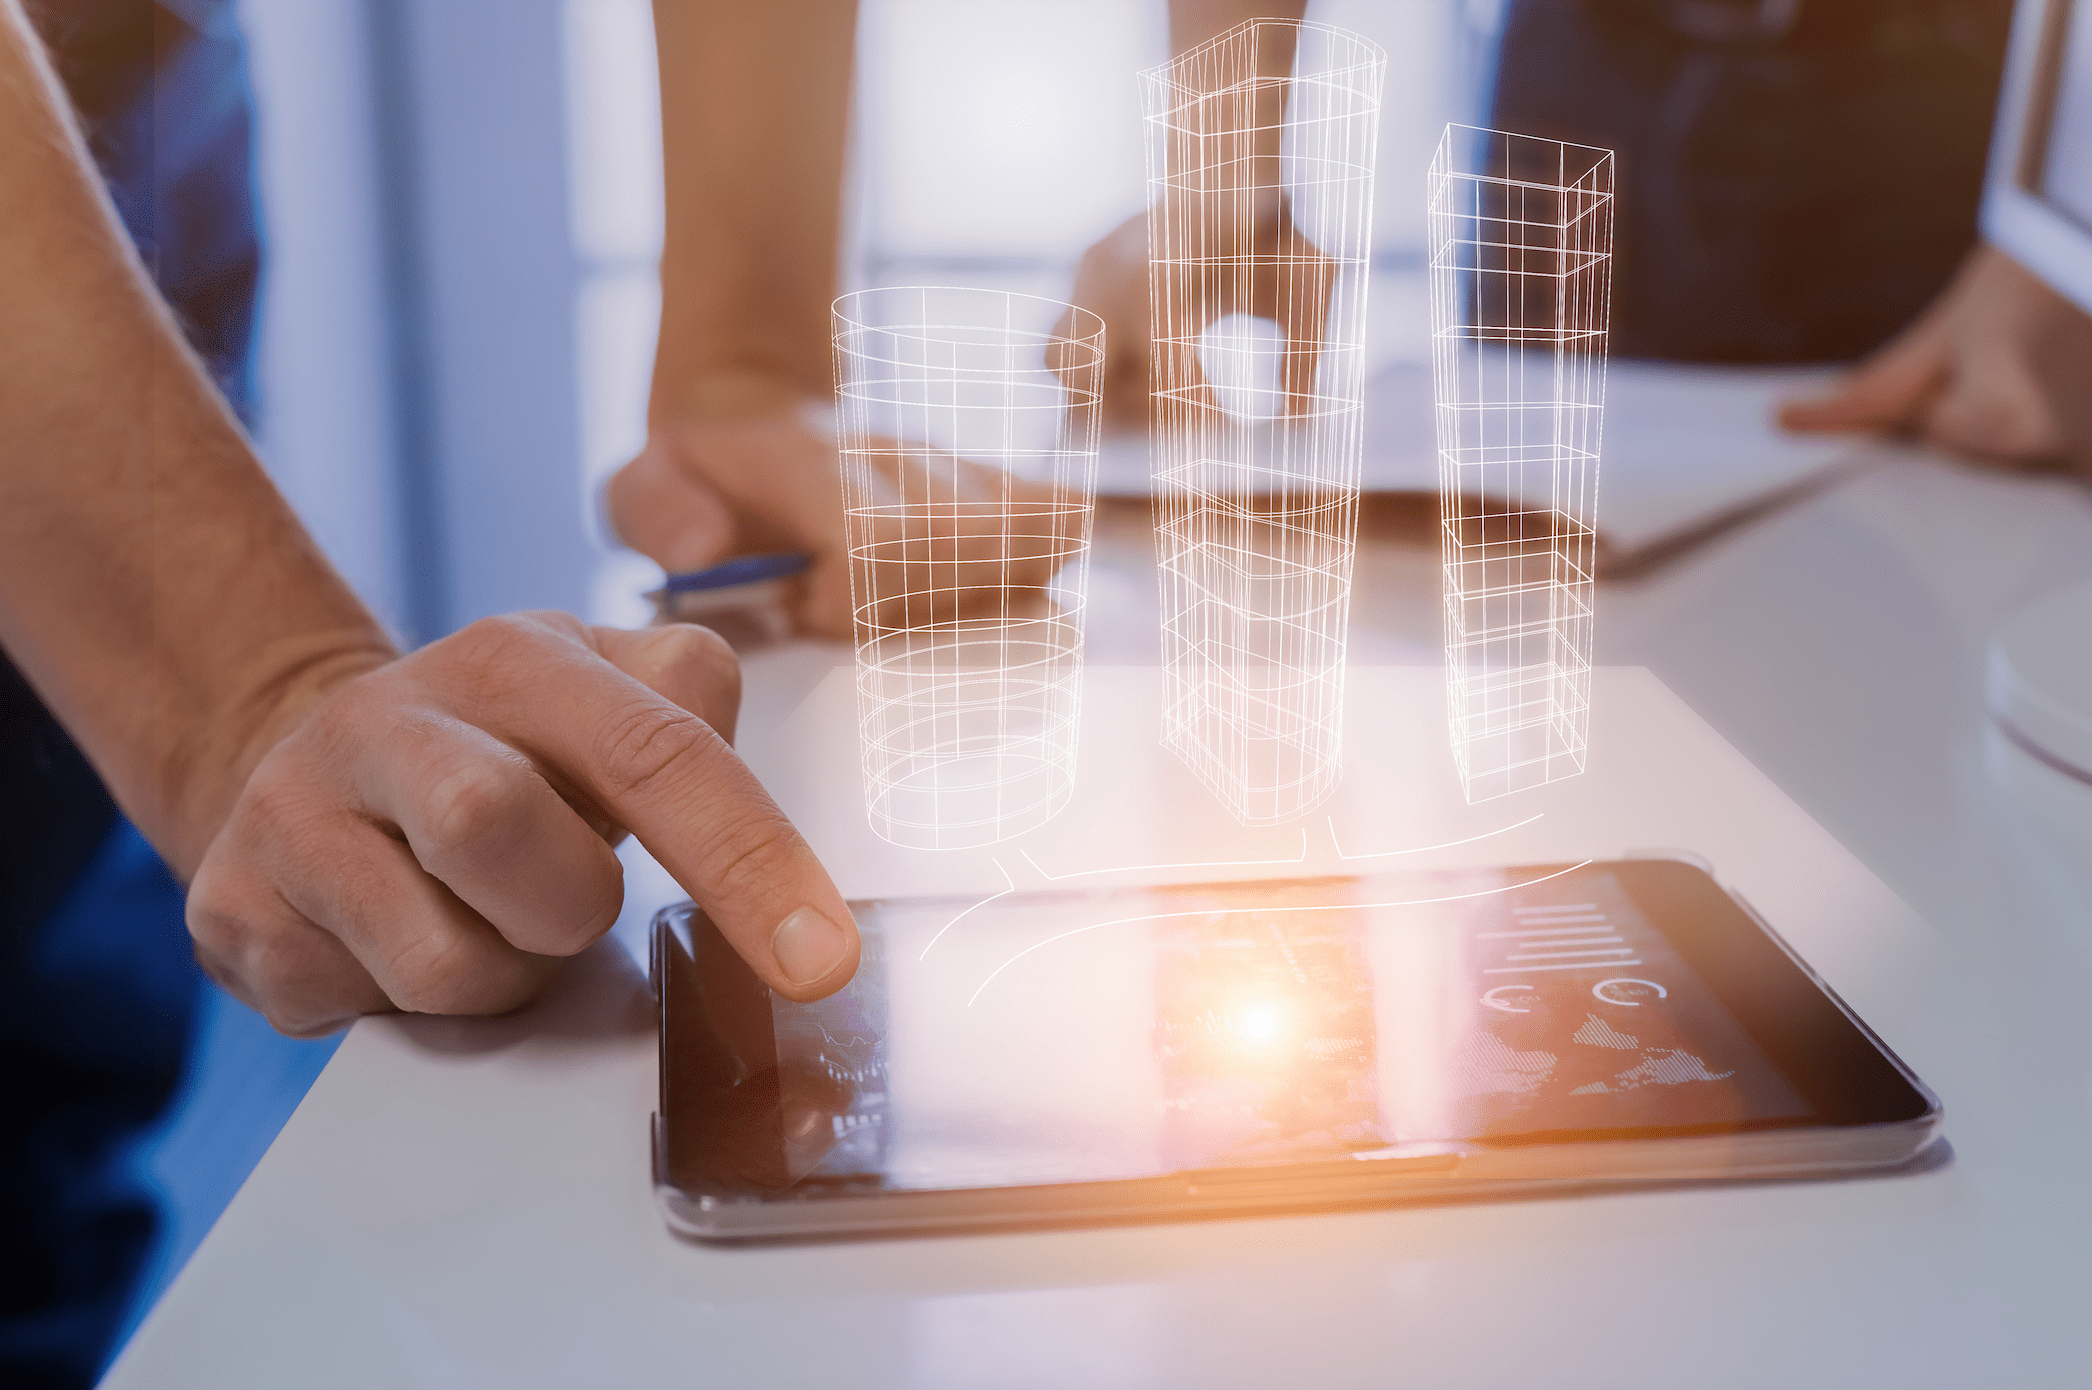 How is digital tech disrupting real estate?